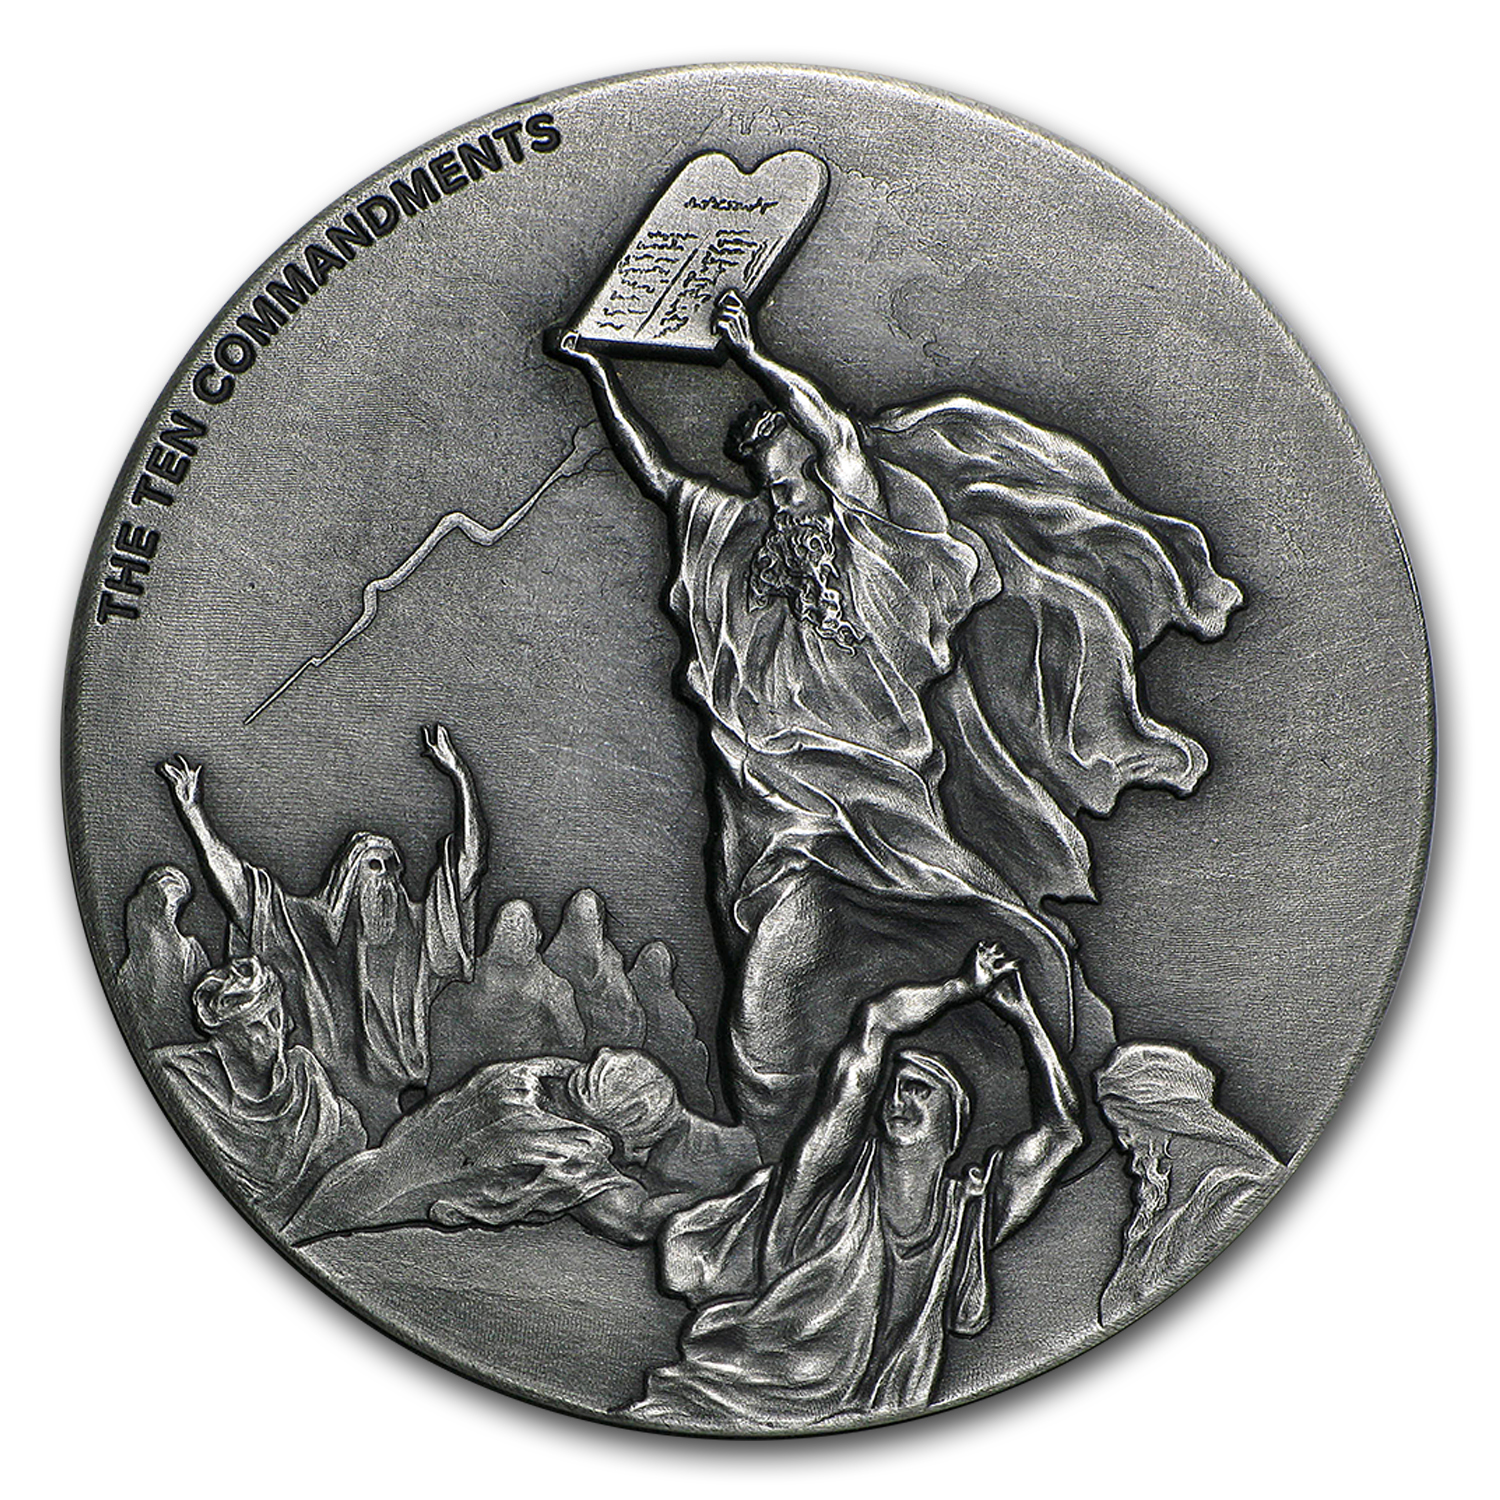 2 Oz Silver Coin Biblical Series Ten Commandments